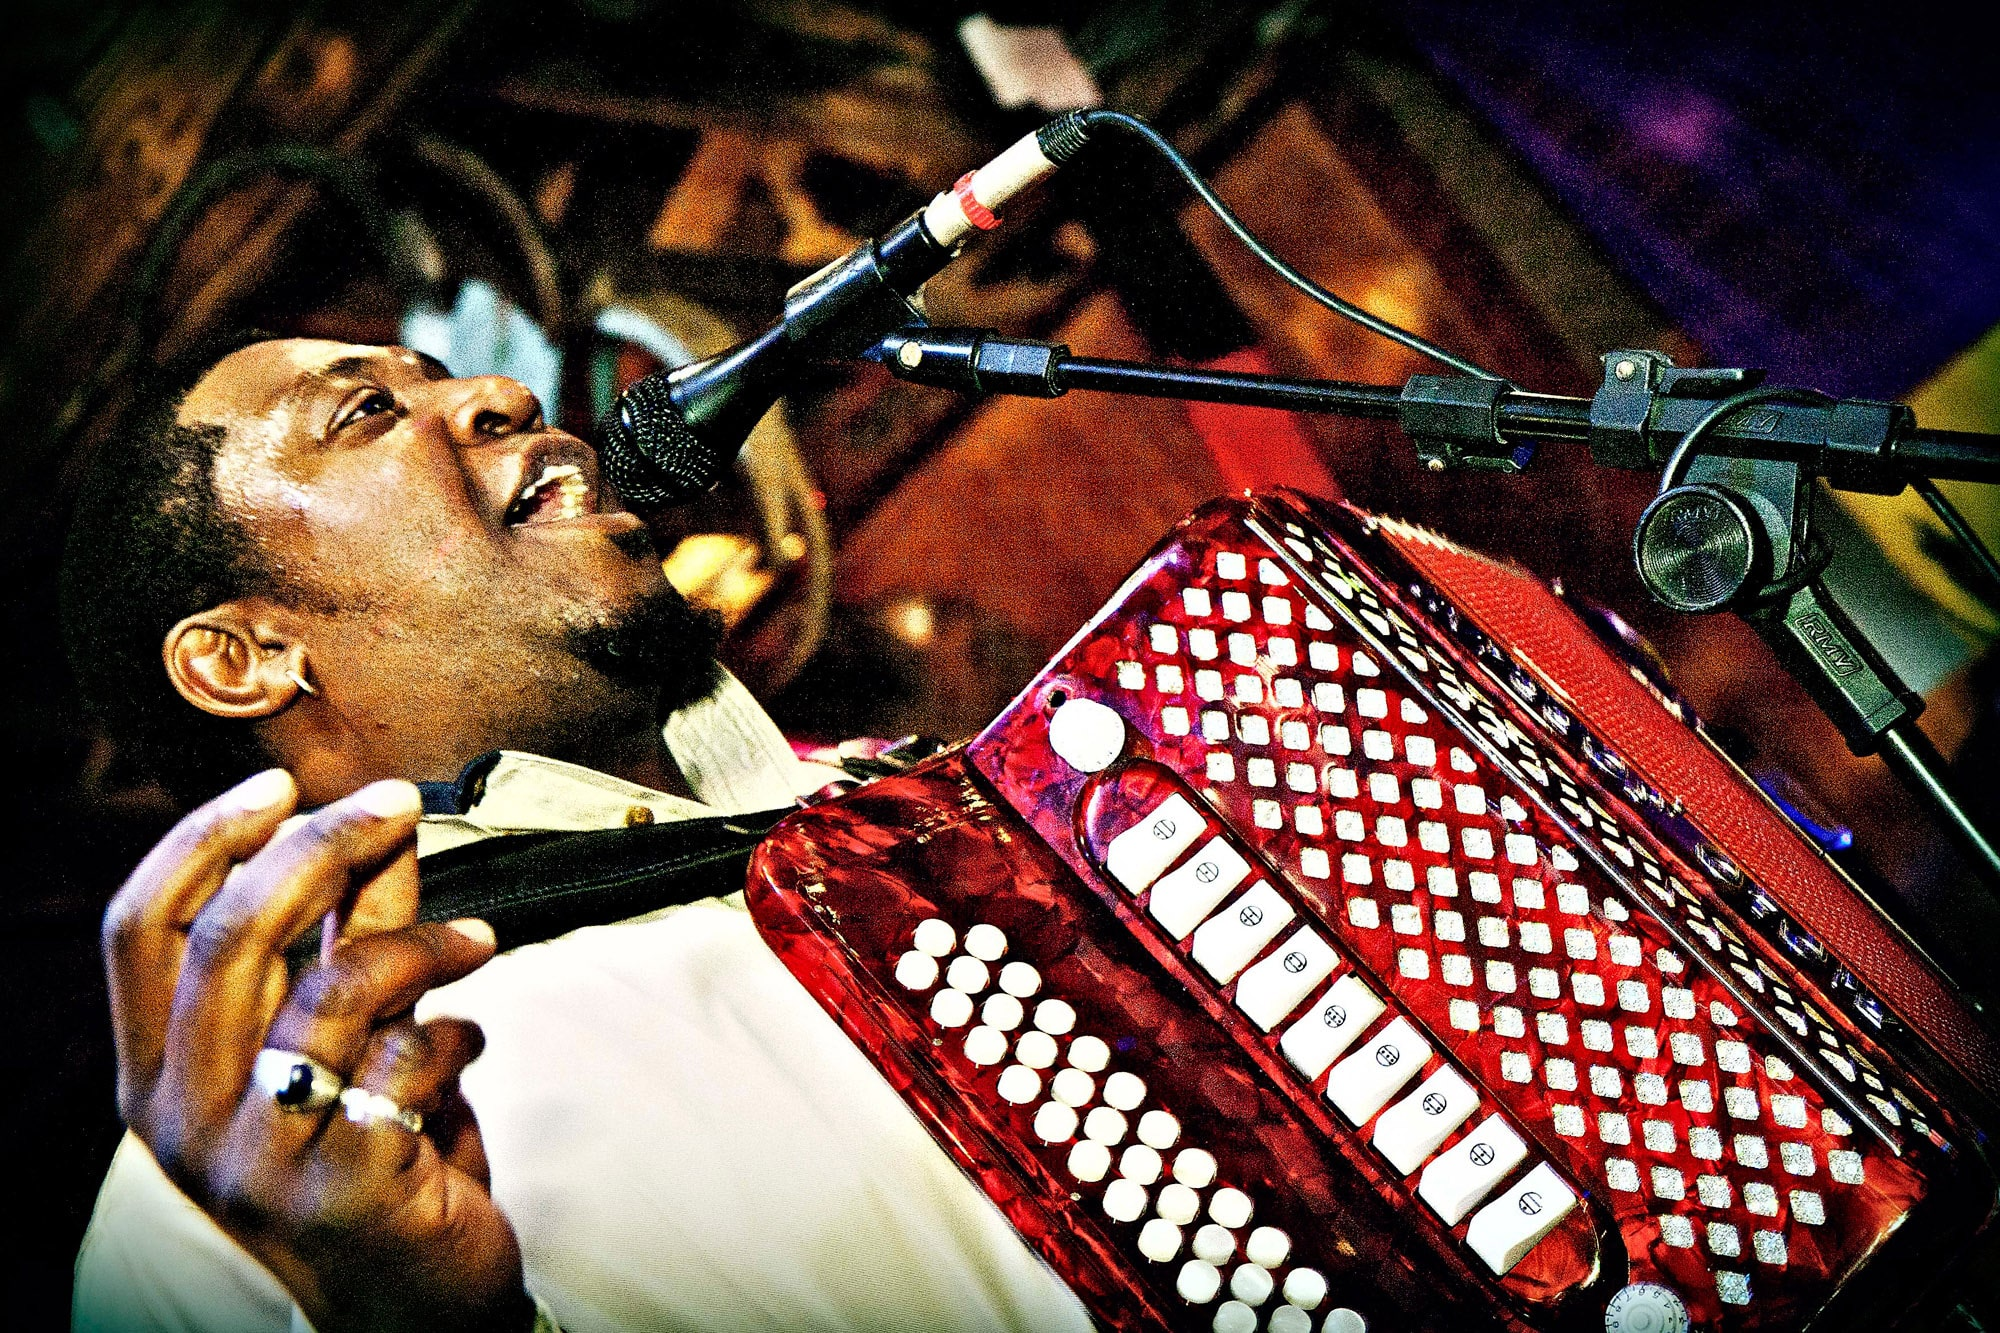 Zydeco music at Mardi Gras Tybee